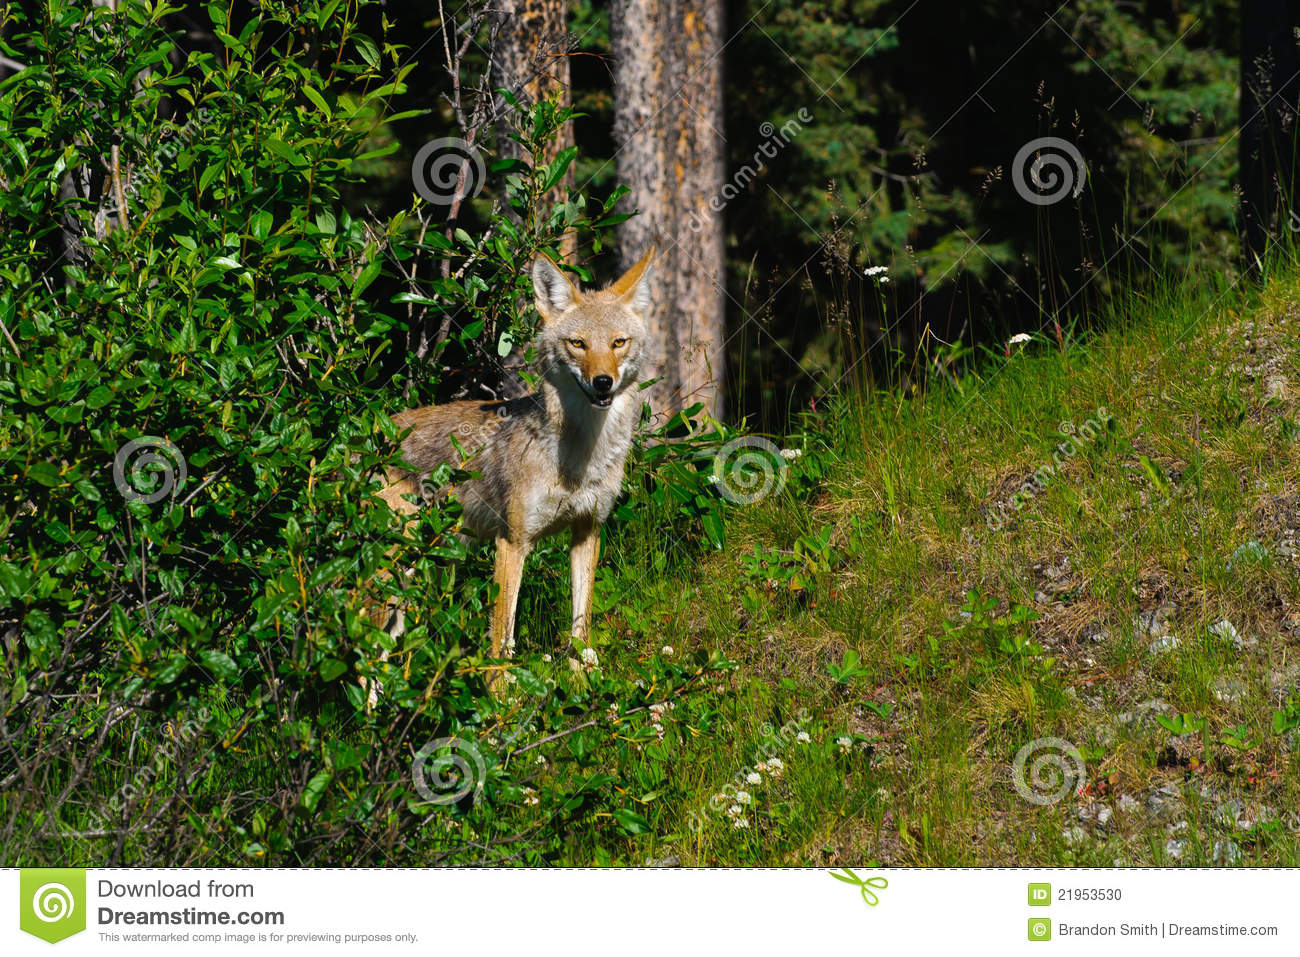 Wild Coyote in the mountains, Kananaskis country Alberta Canada.